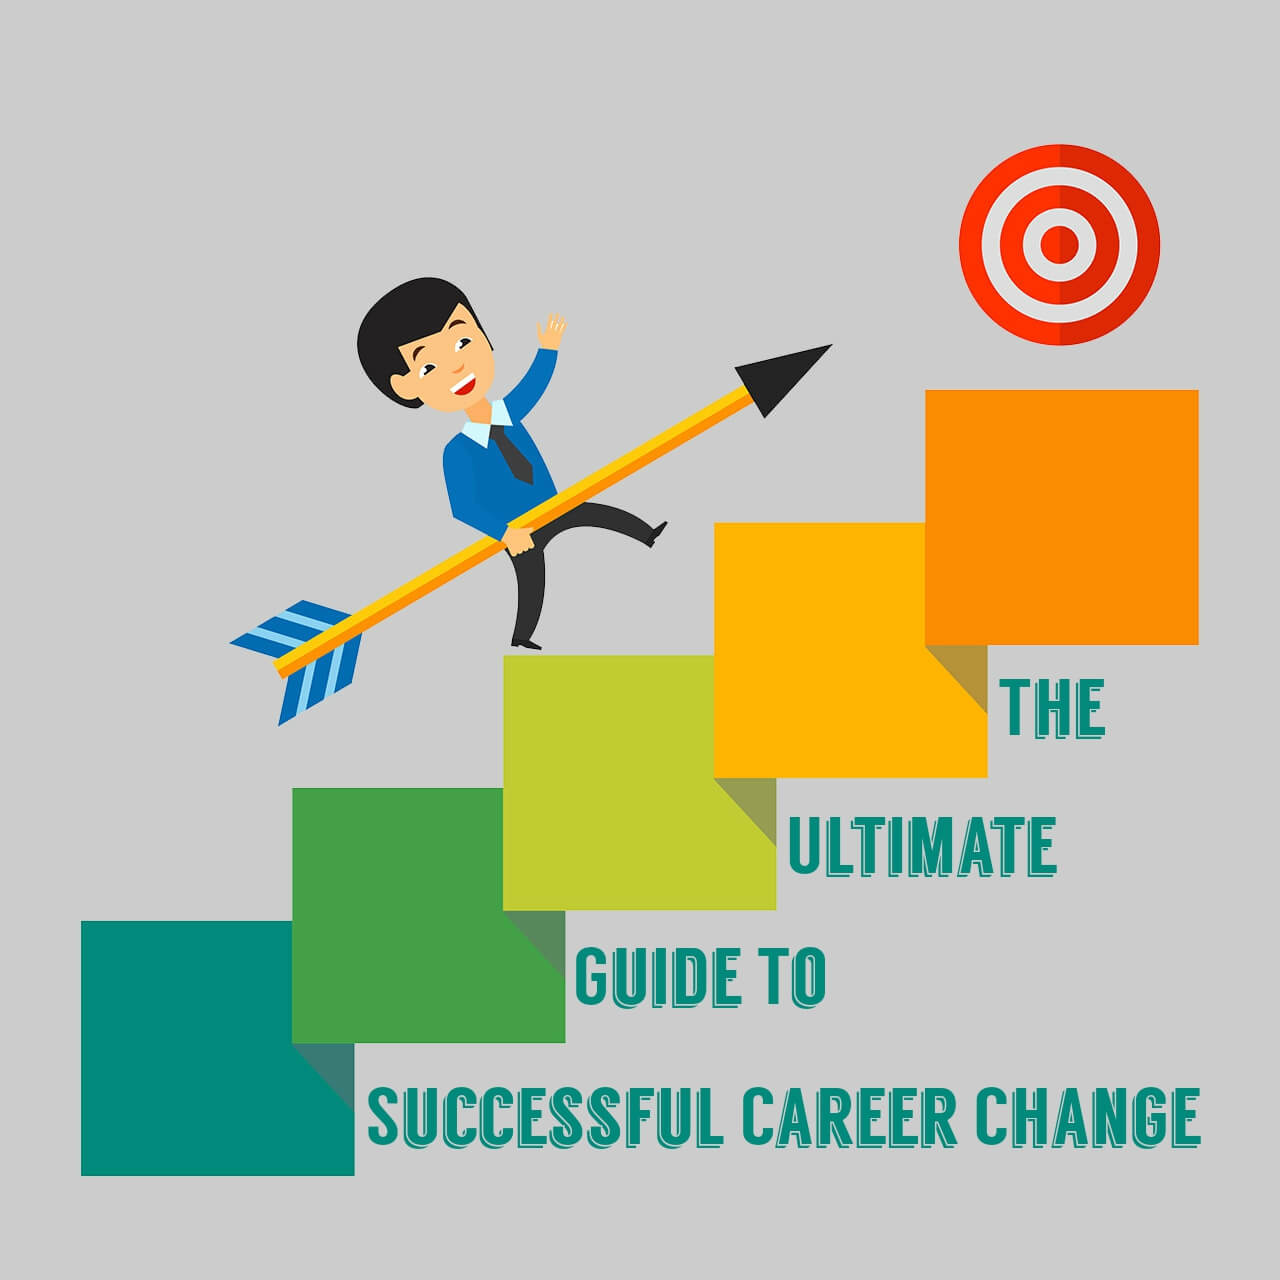 Guide To Successful Career Change